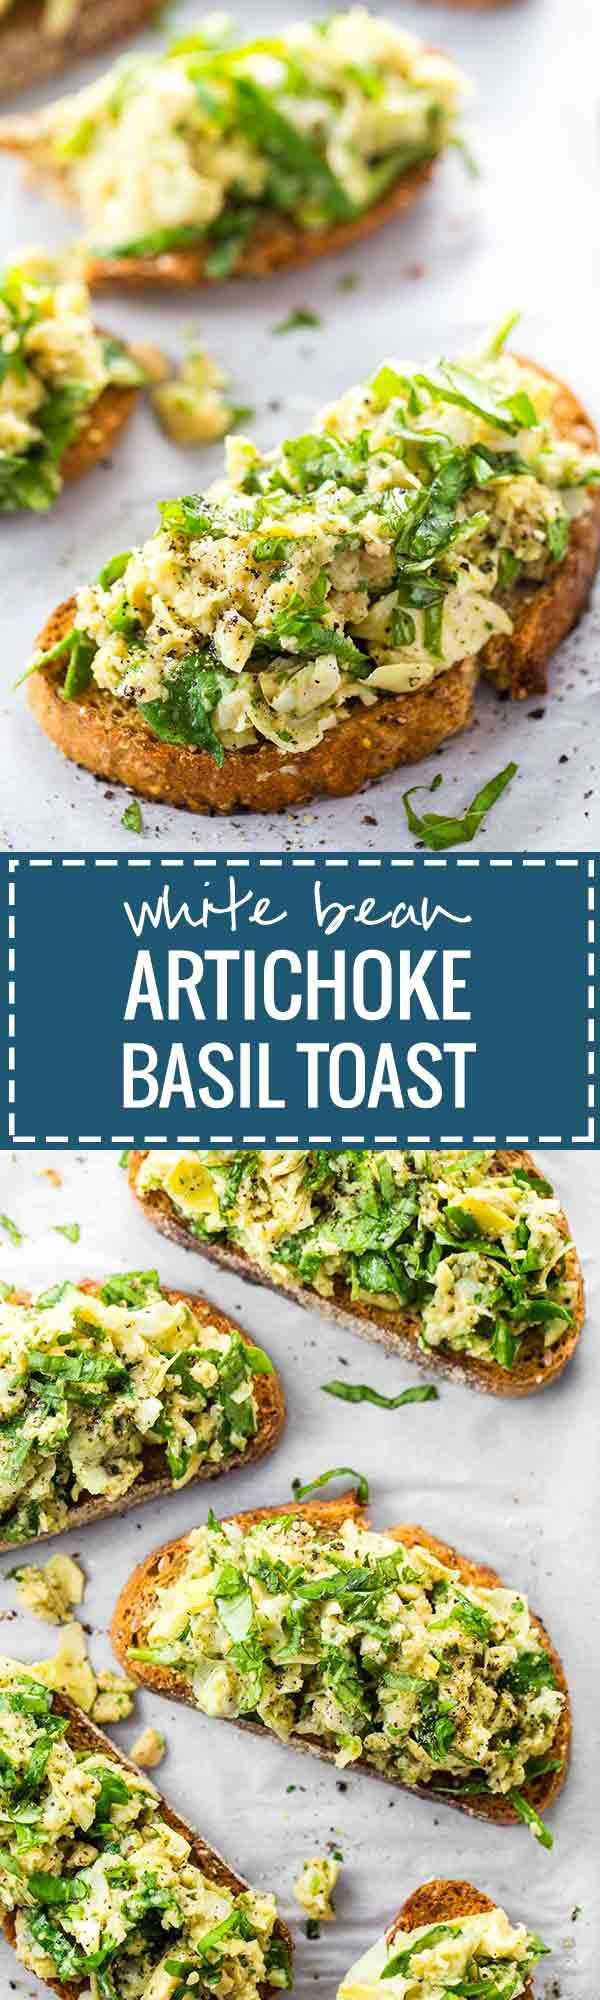 10 Minute White Bean Artichoke and Basil Toasts - THE BEST quick and easy recipe for basil lovers!